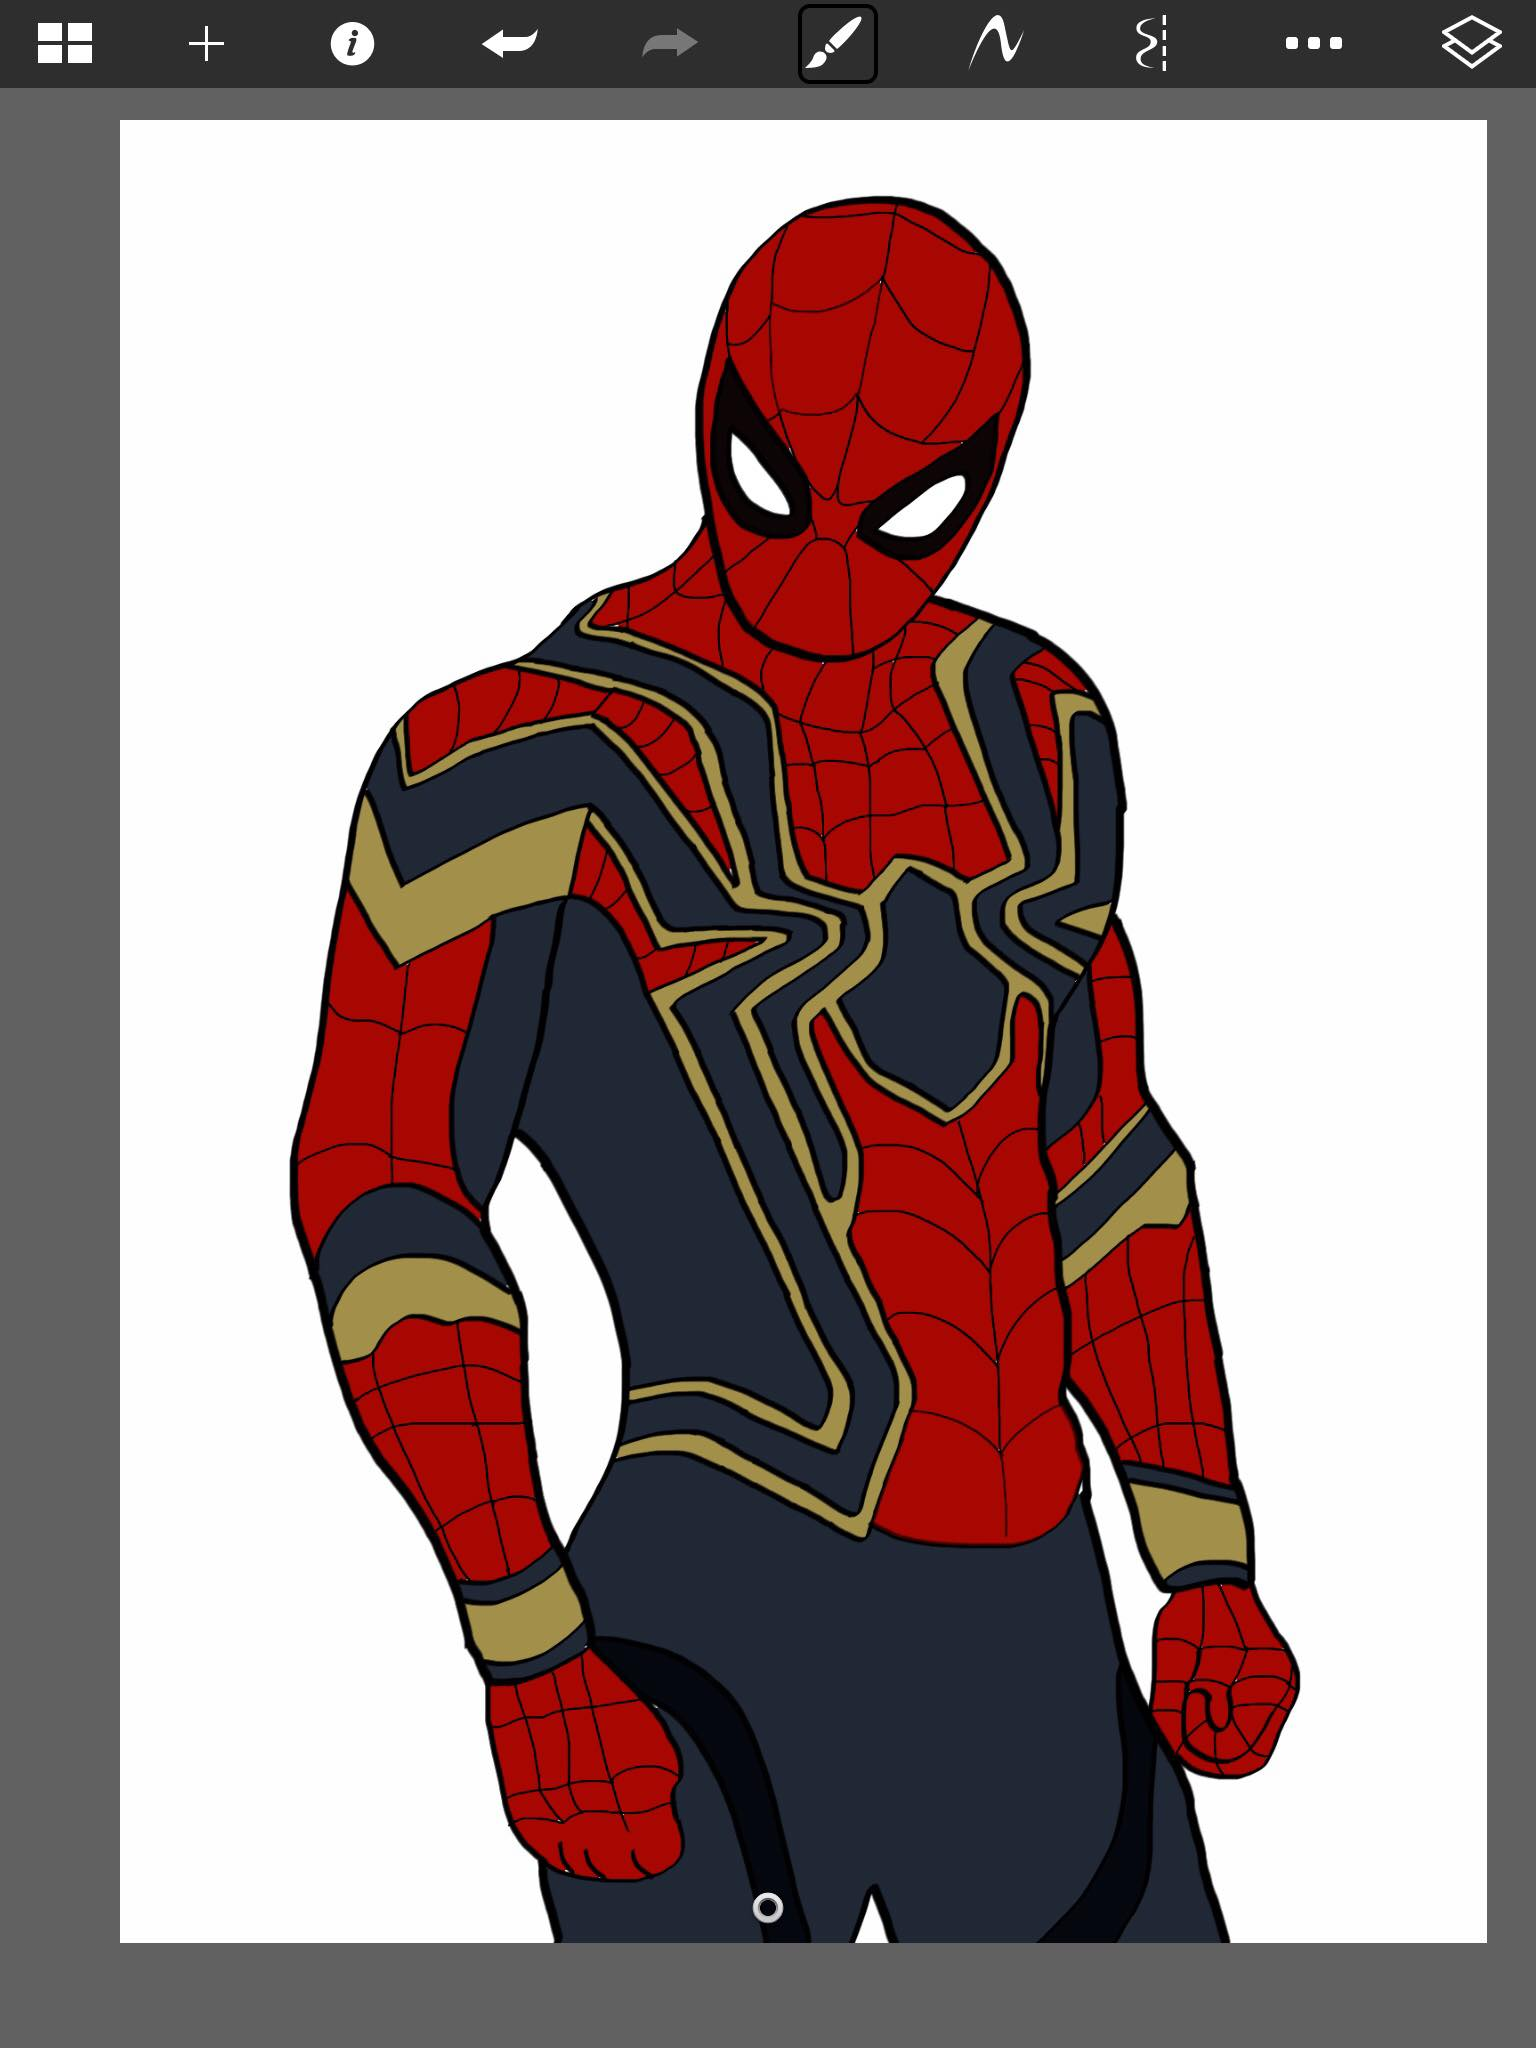 Spider Man Suit Drawing : spider, drawing, Digital, Drawing, Spider, Suit), Spiderman